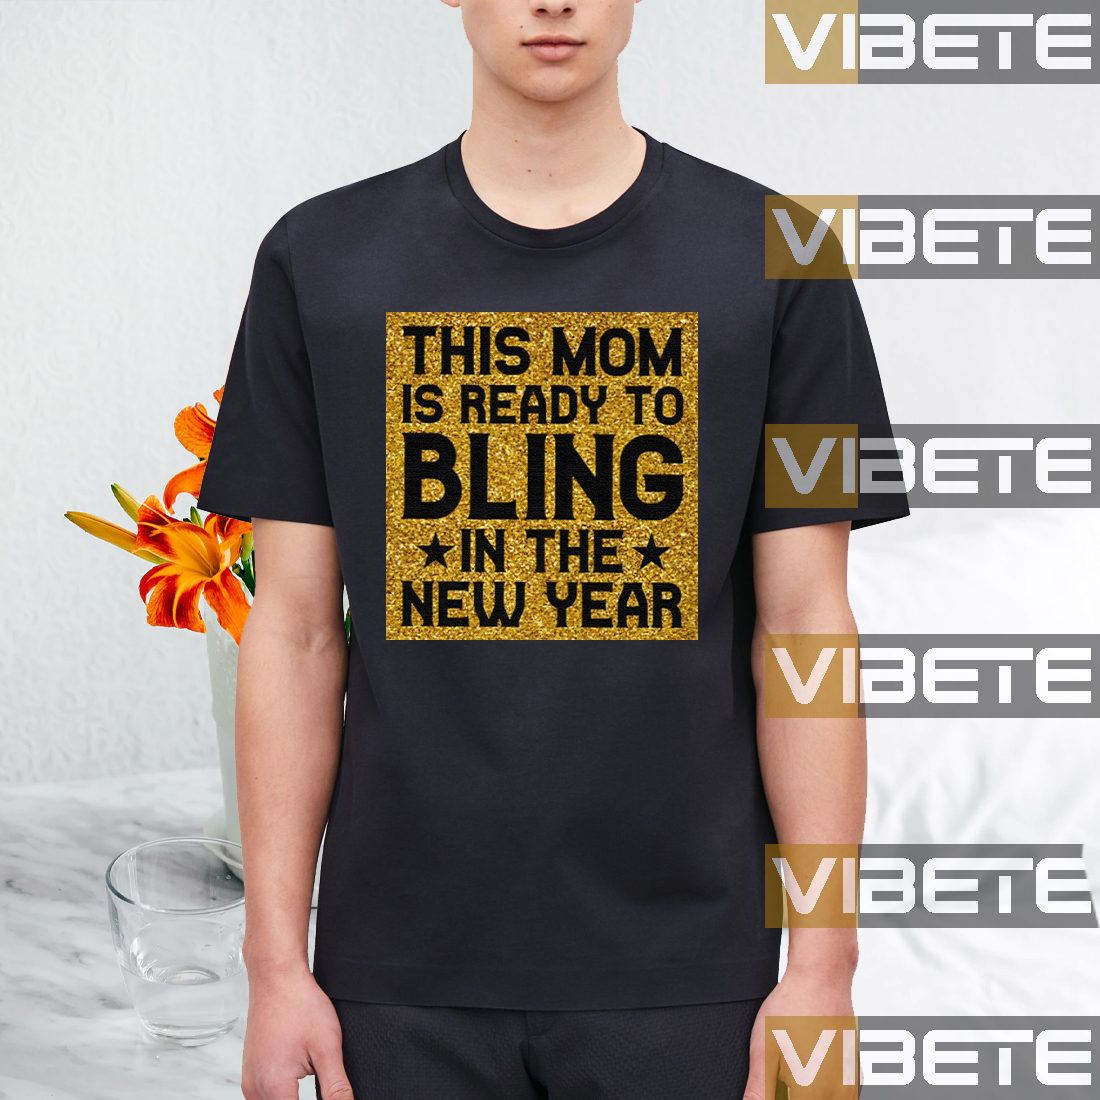 READY TO BLING IN THE NEW YEAR TEESHIRT